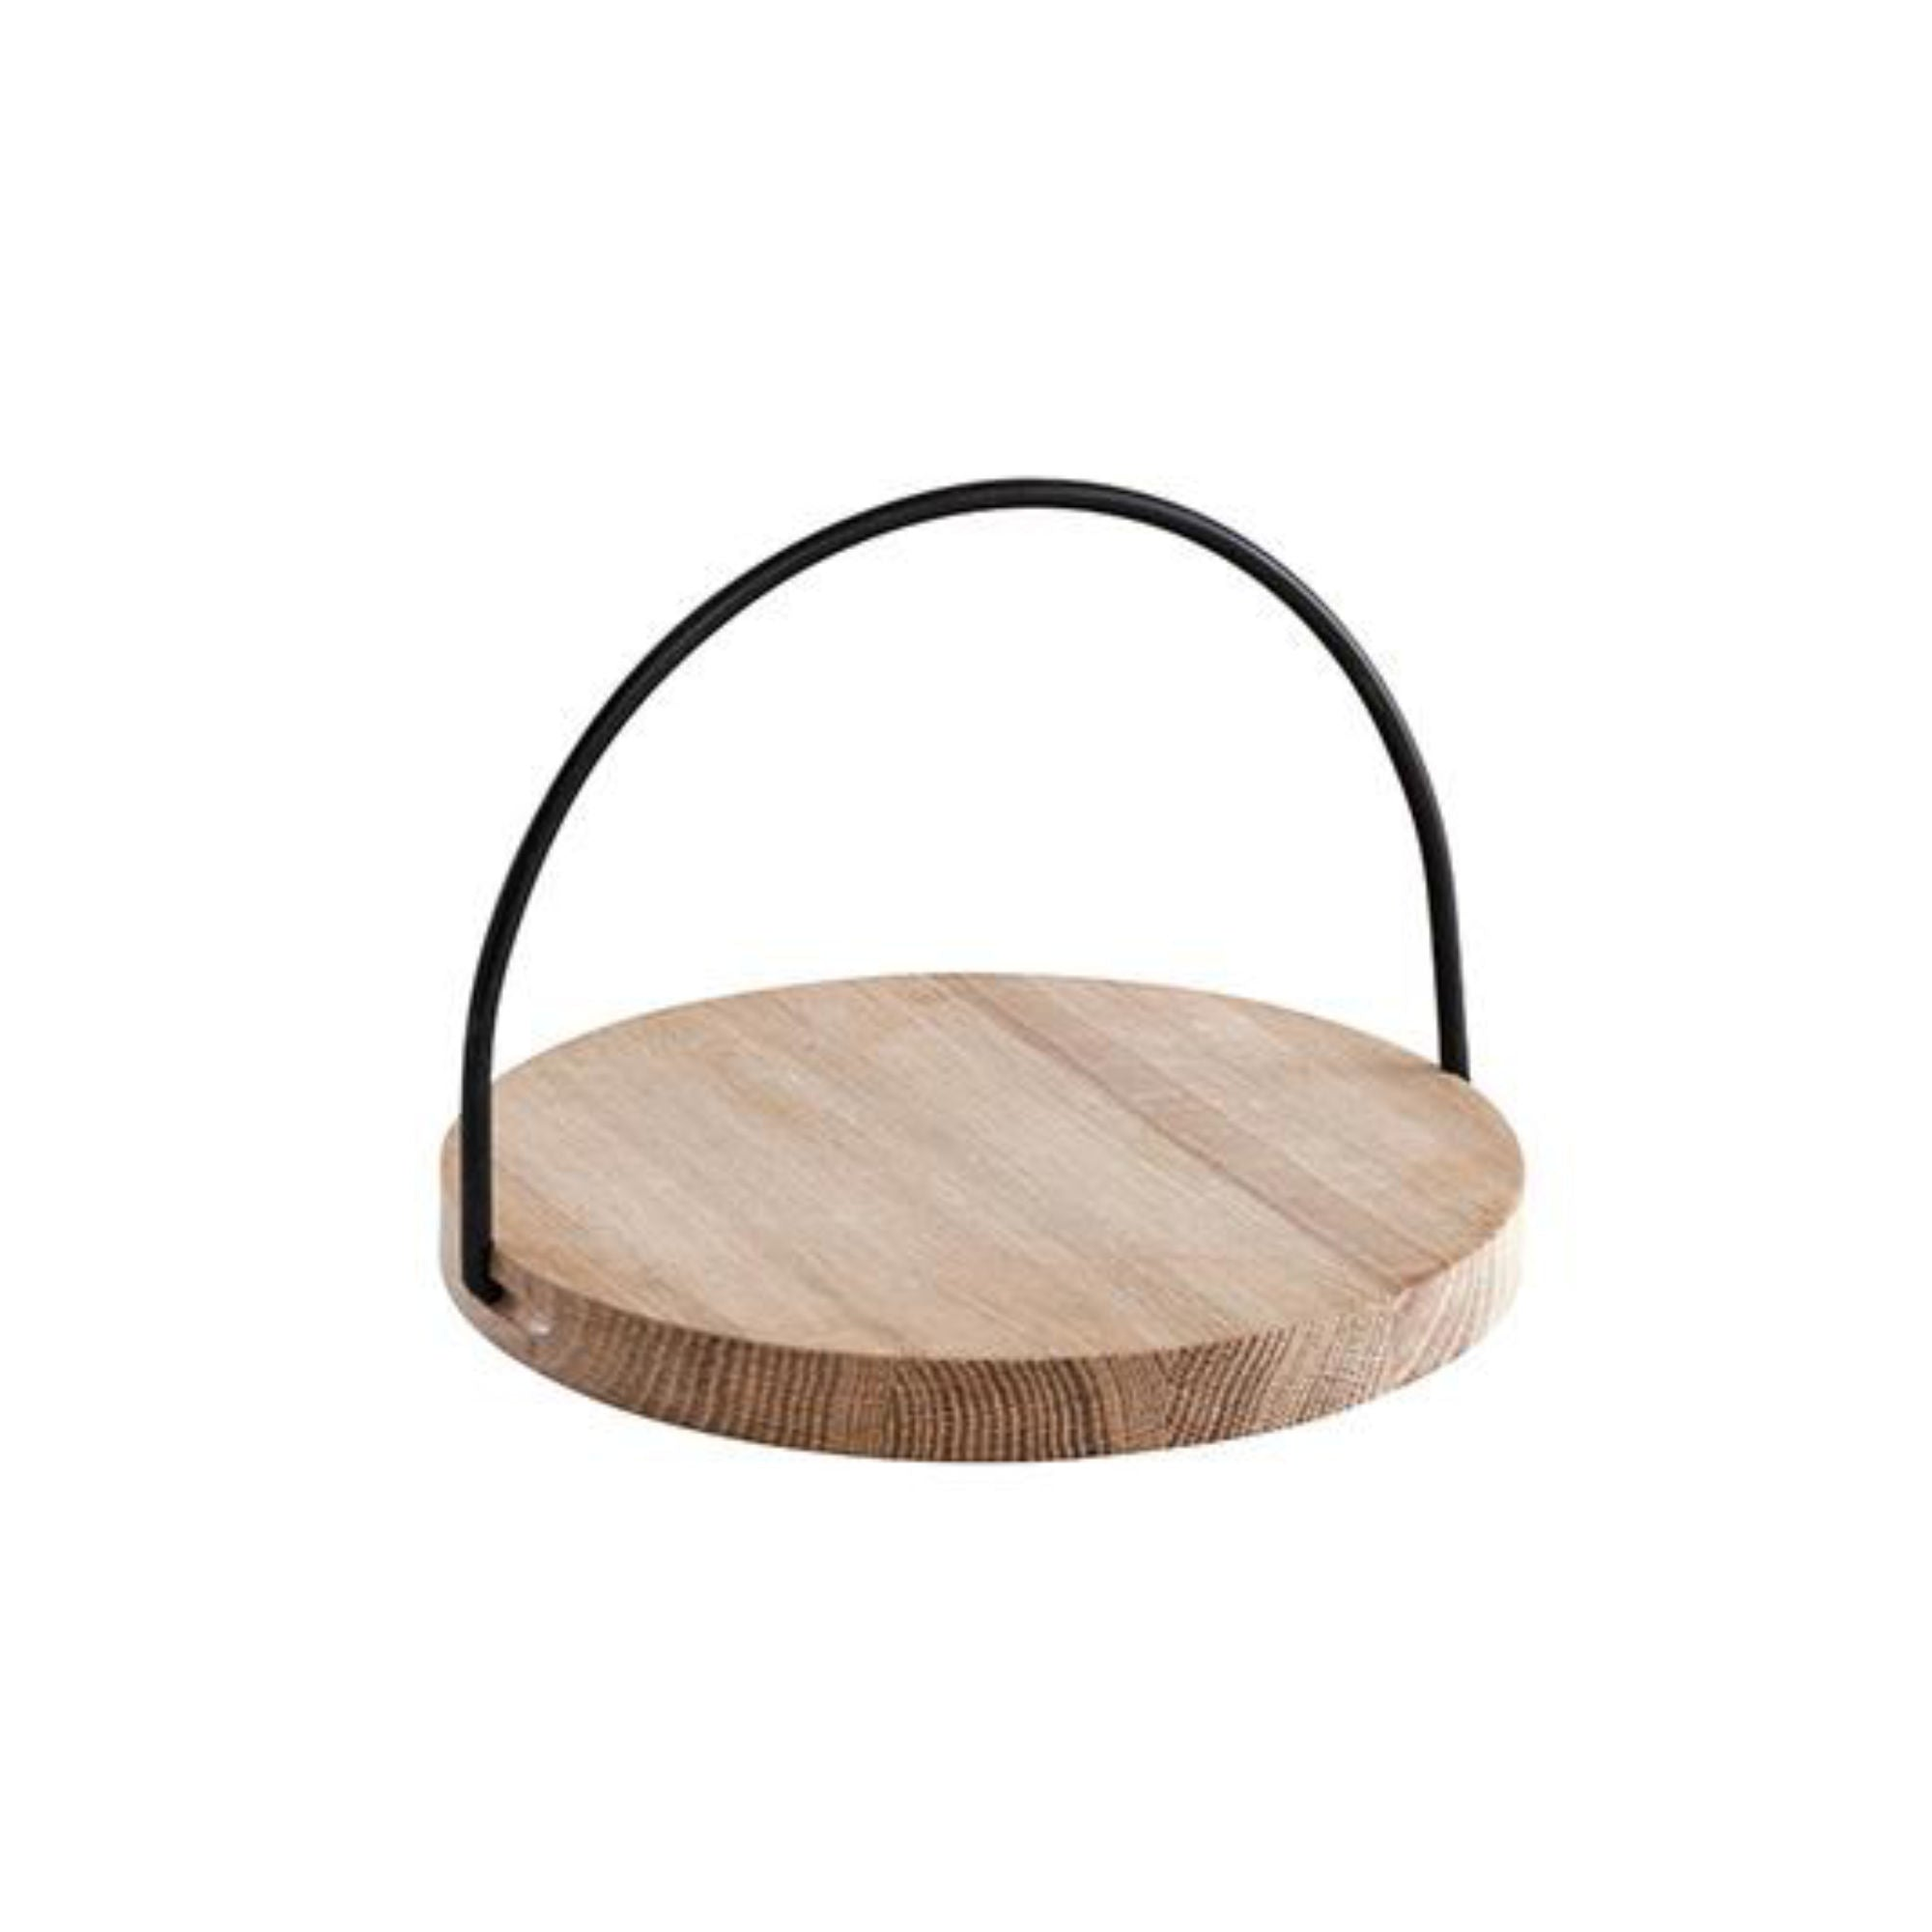 Woud Loop Tray Small , Black Handle